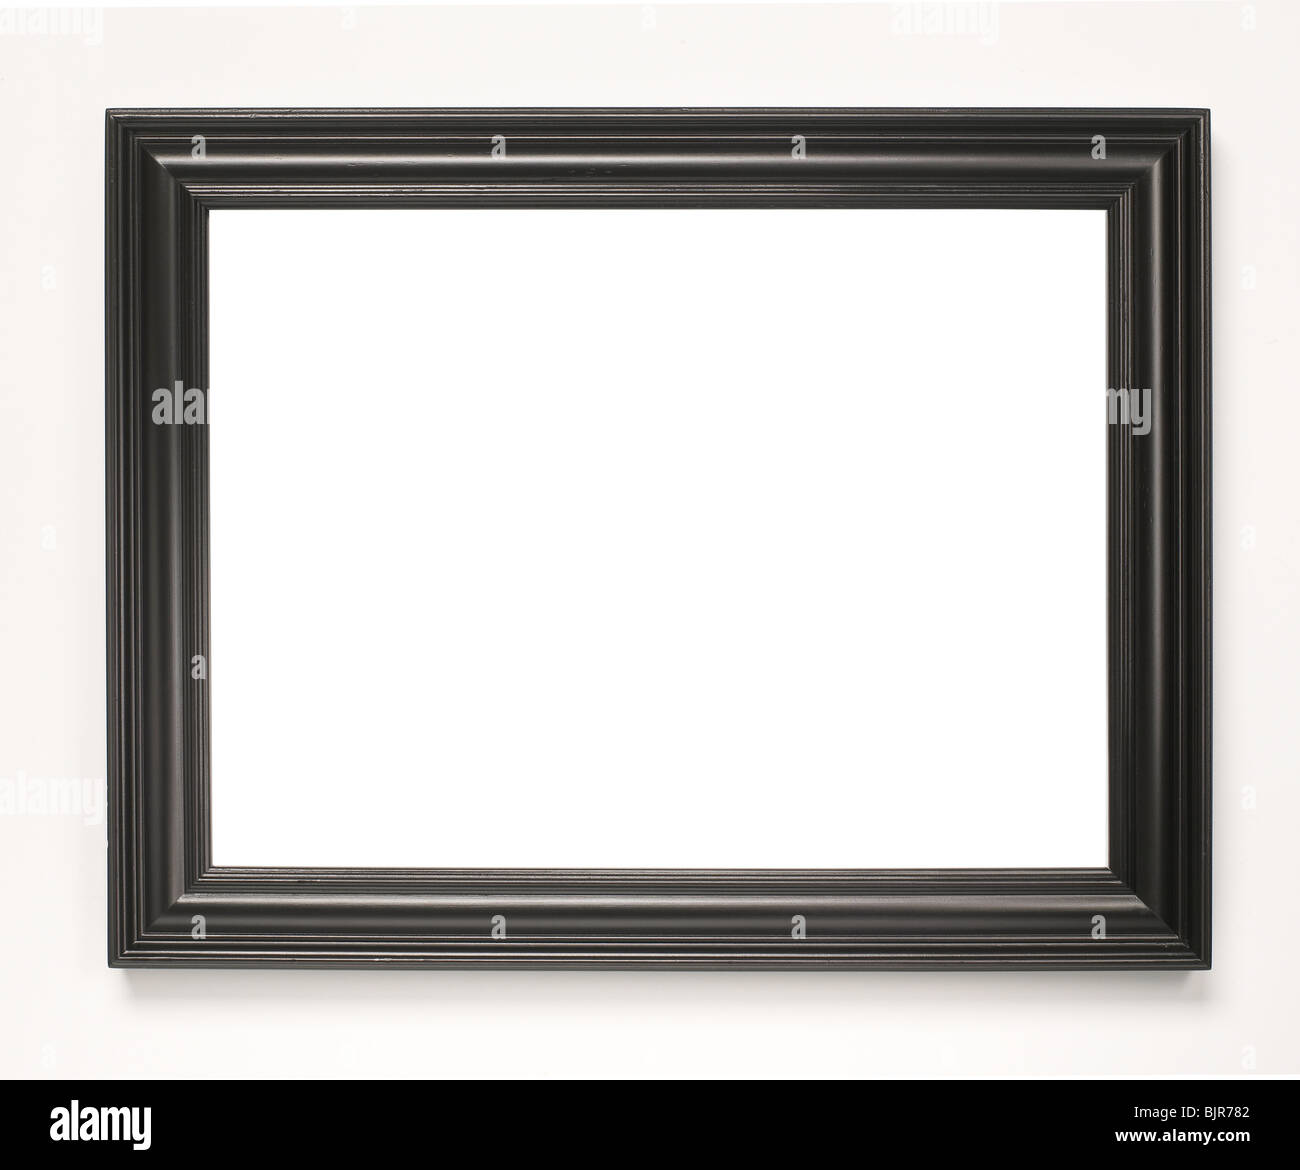 Black wooden picture frame - Stock Image